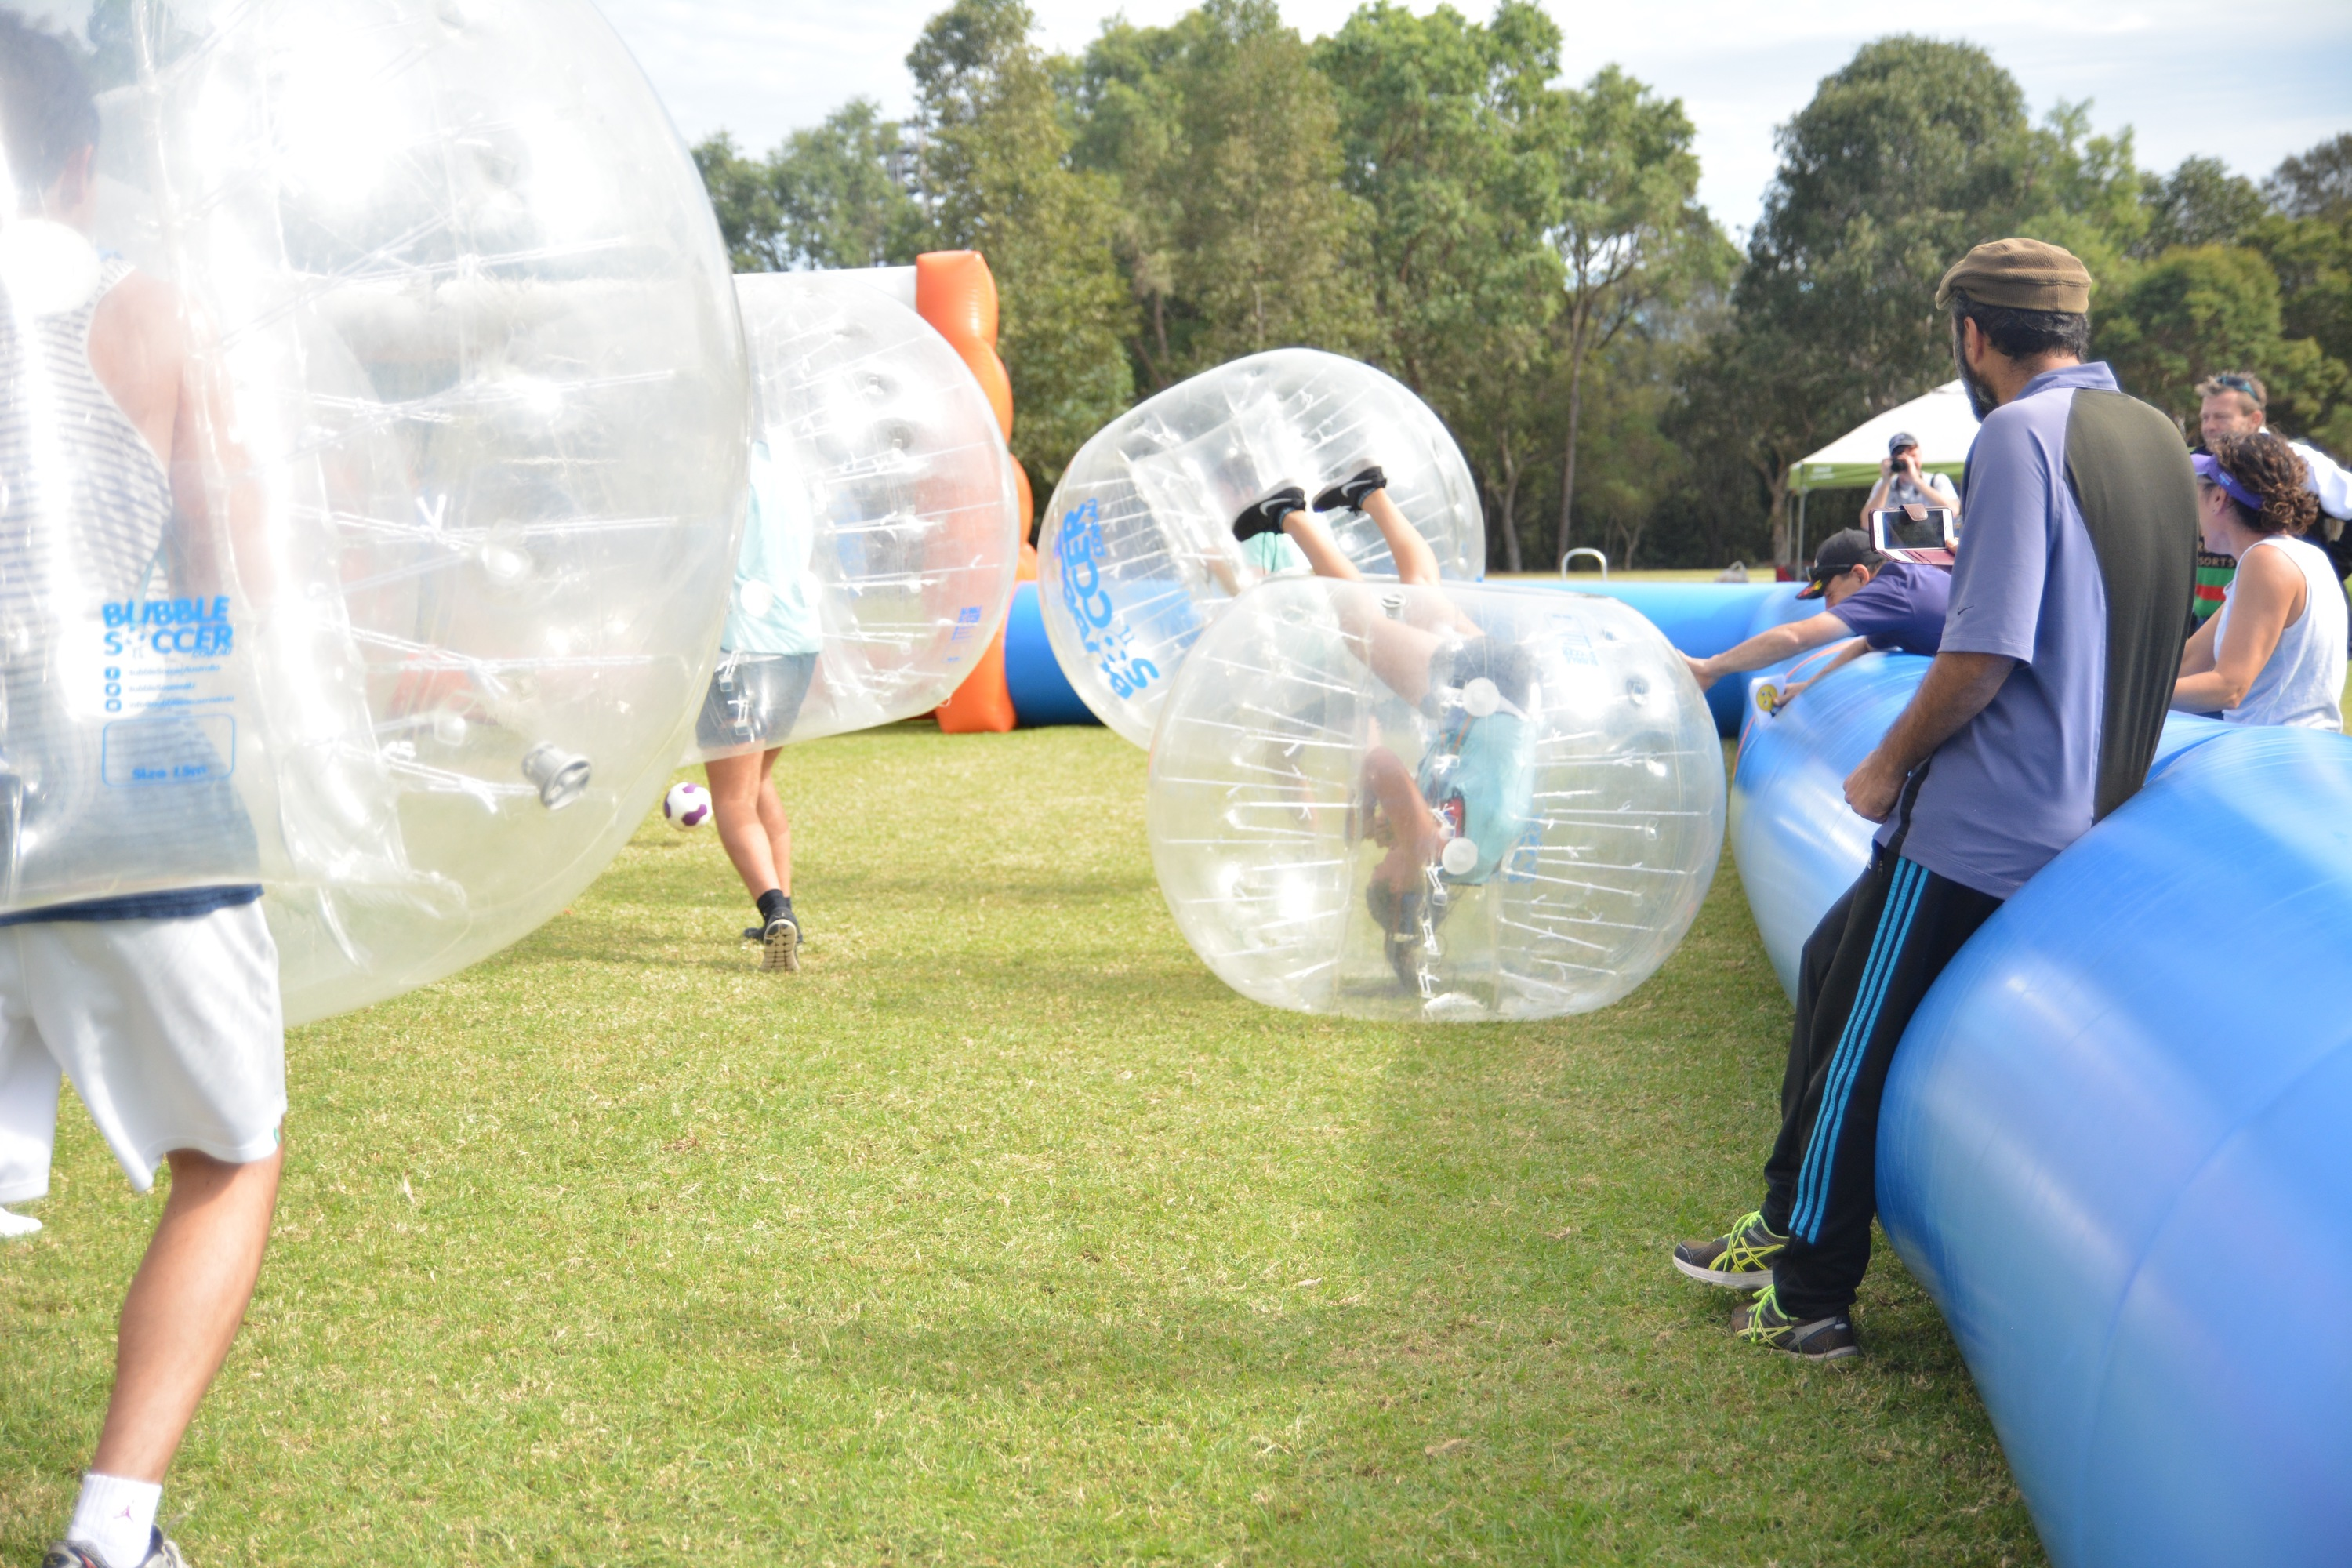 People rolling around playing bubble soccer.